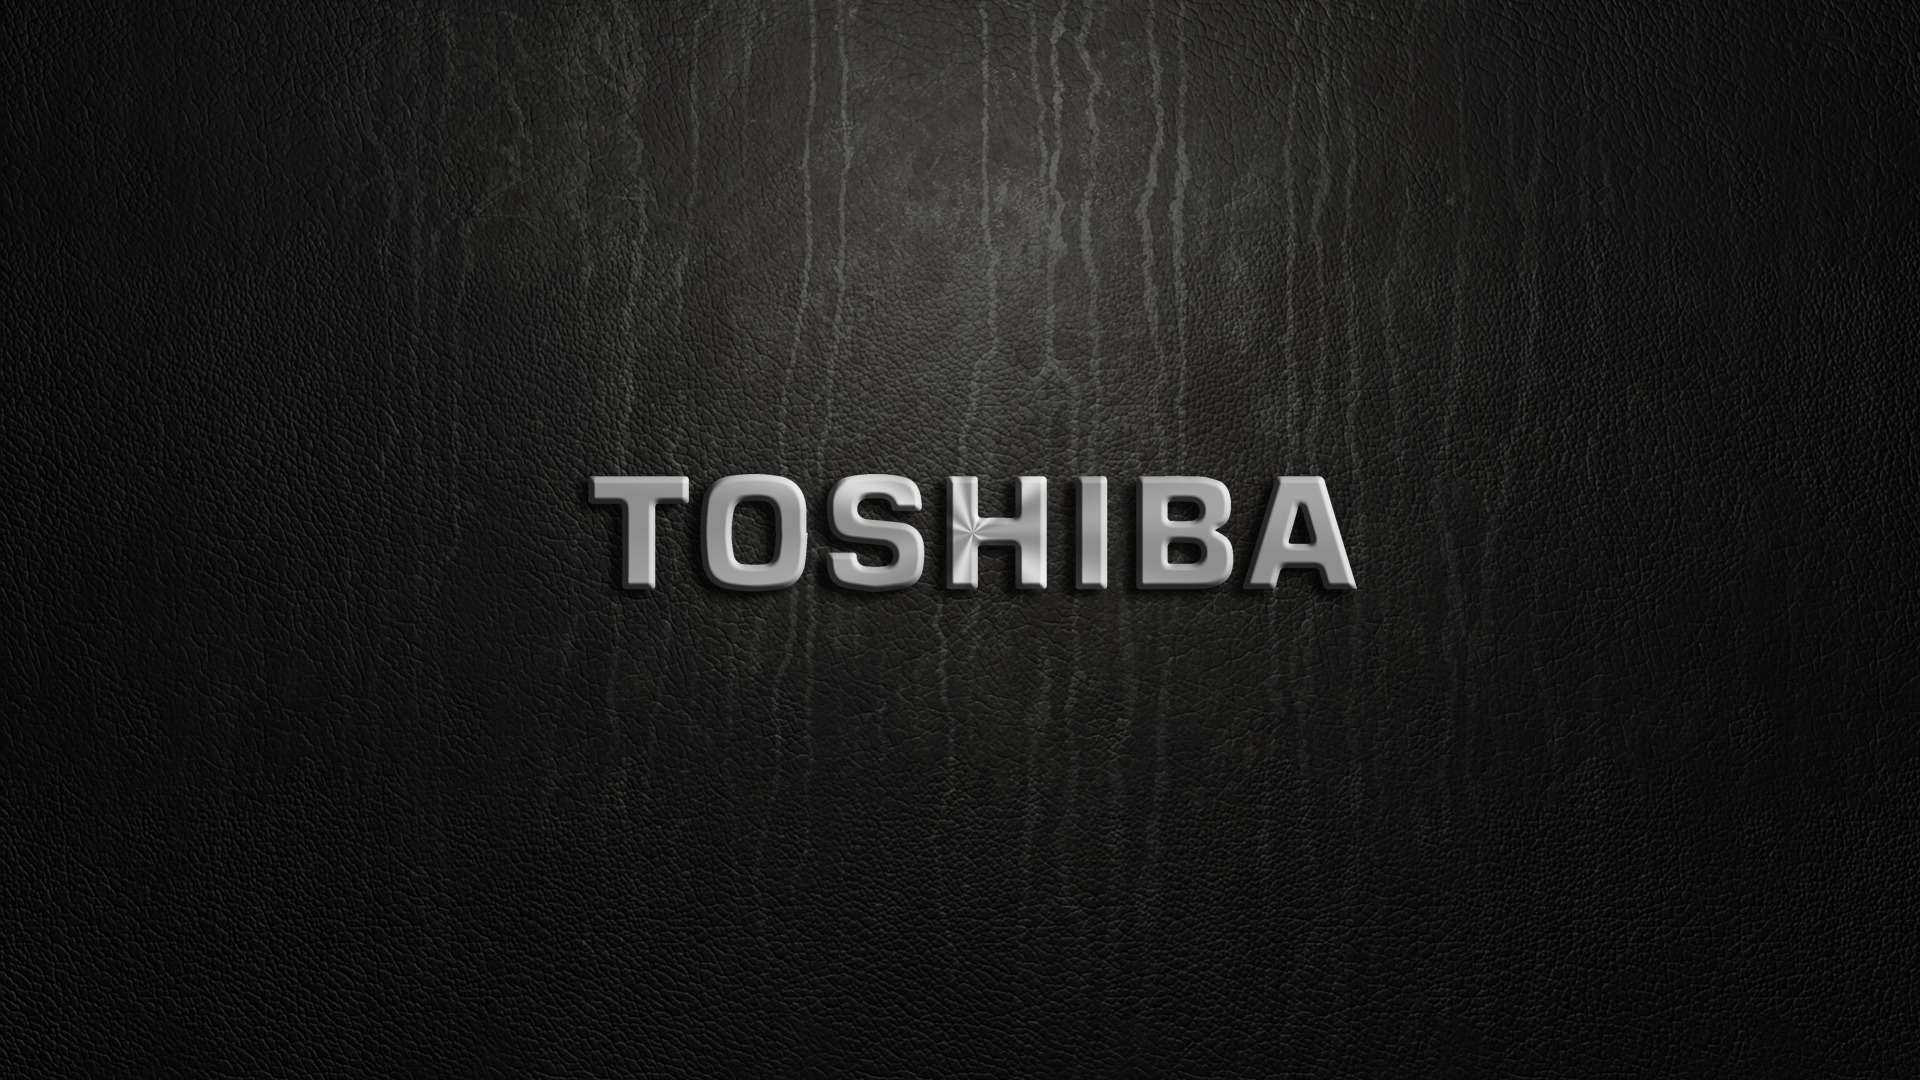 Toshiba Wallpapers Hd